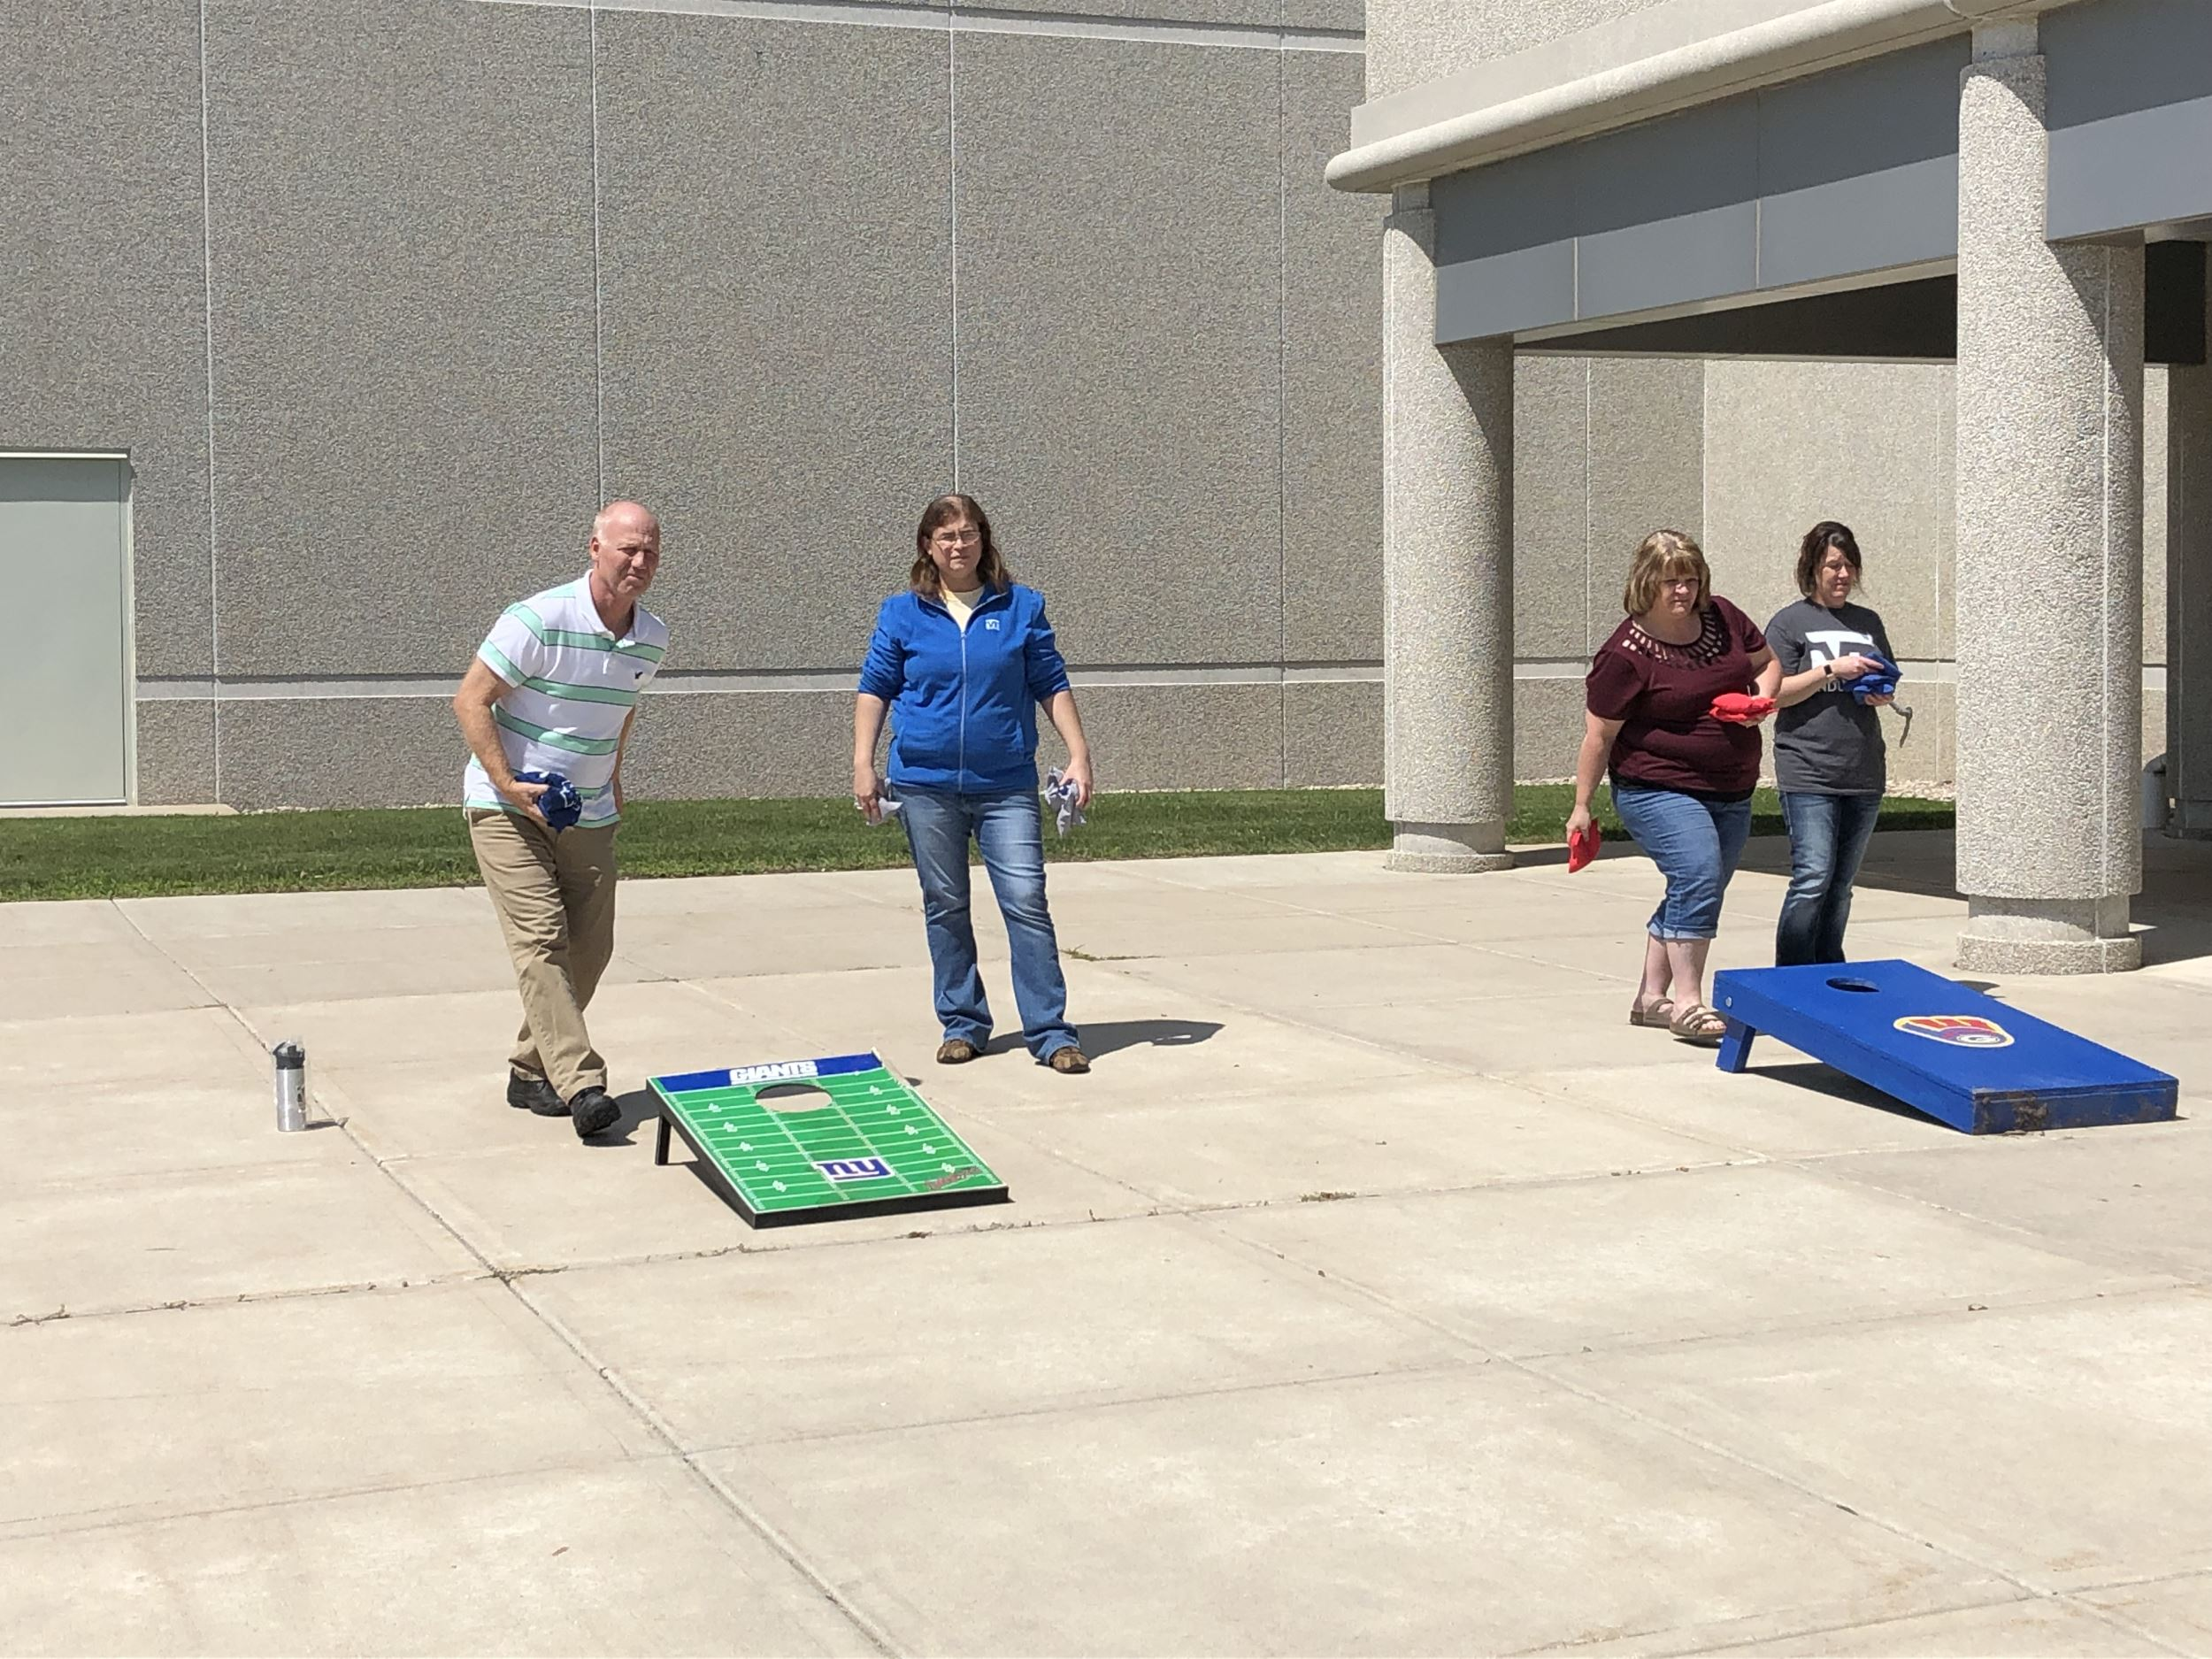 Employees playing a friendly game of bags